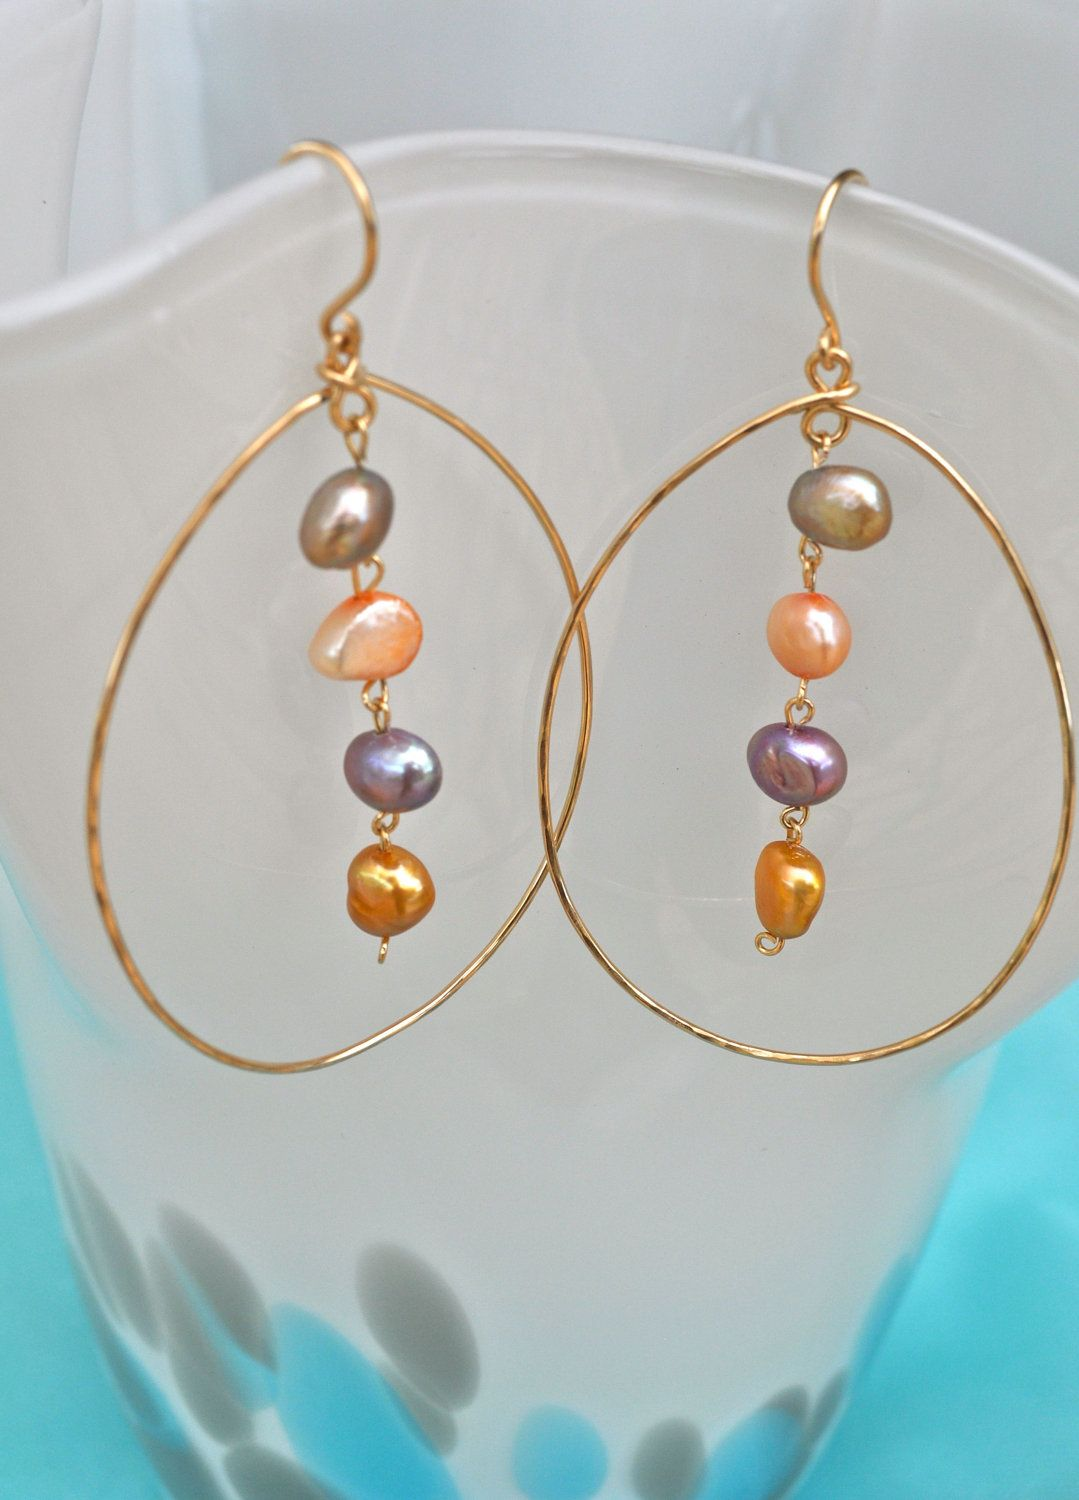 14K Gold Filled Handmade Hammered Tear Drop Hoop Earrings with cascading multi colored fresh pearls. $37.00, via Etsy.